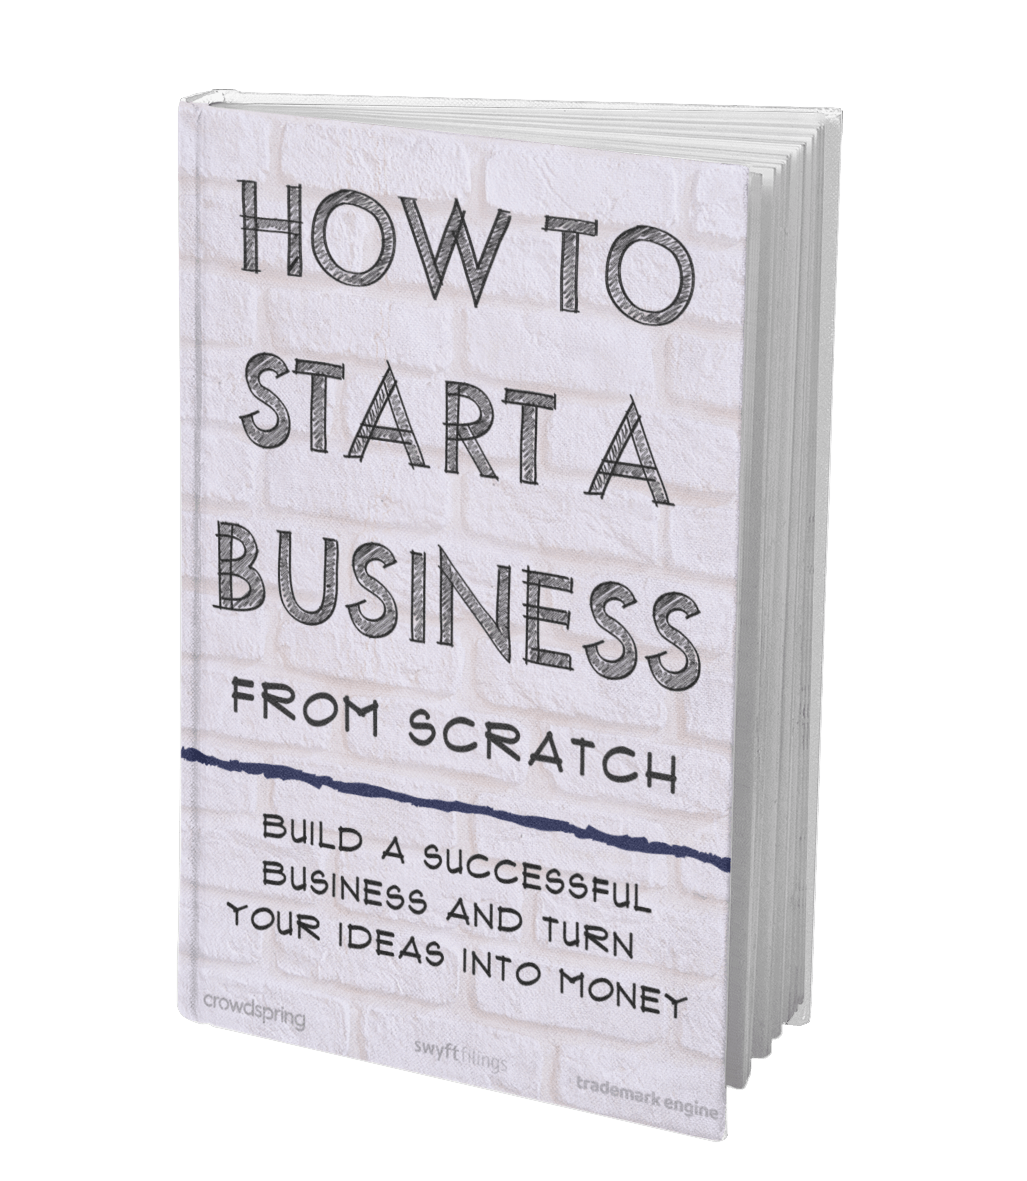 How to Start a Business From Scratch: Build a Successful Business and Turn Your Ideas Into Money